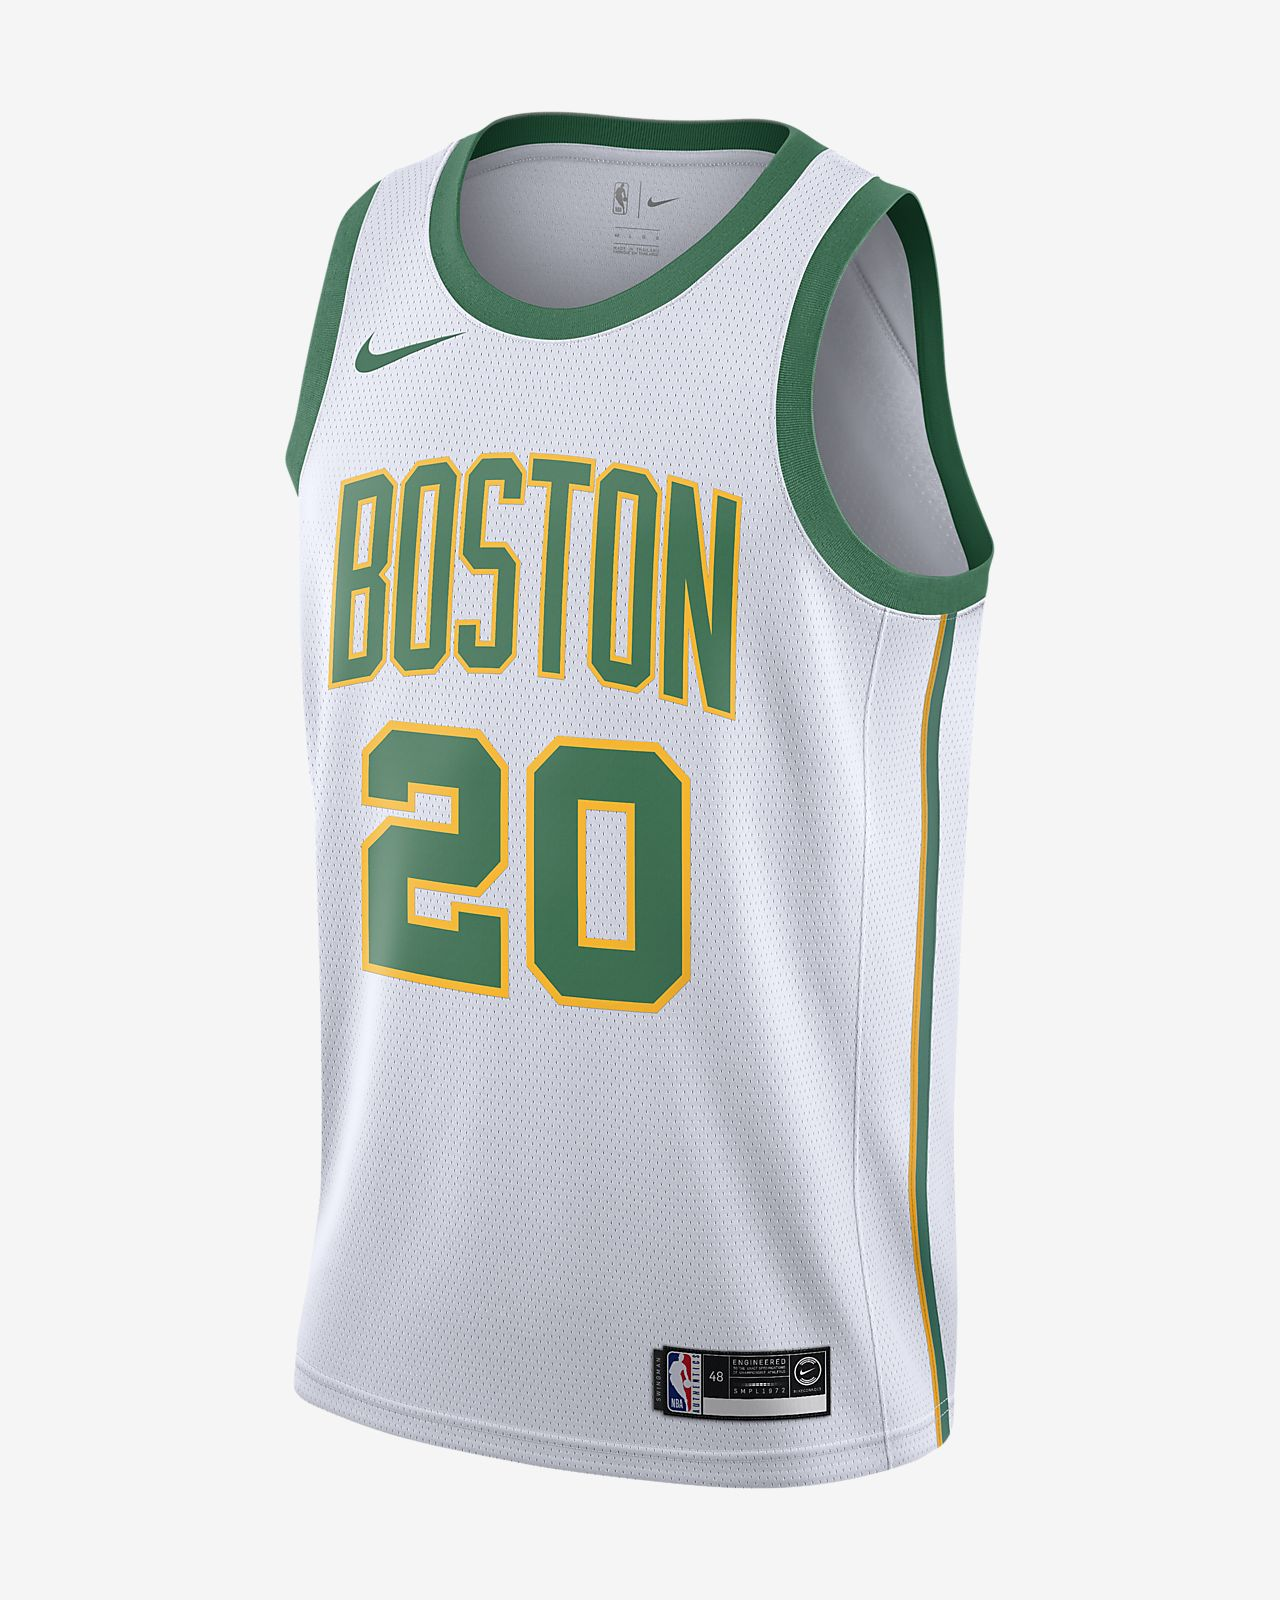 Camisola com ligação à NBA da Nike Gordon Hayward City Edition Swingman (Boston Celtics) para homem